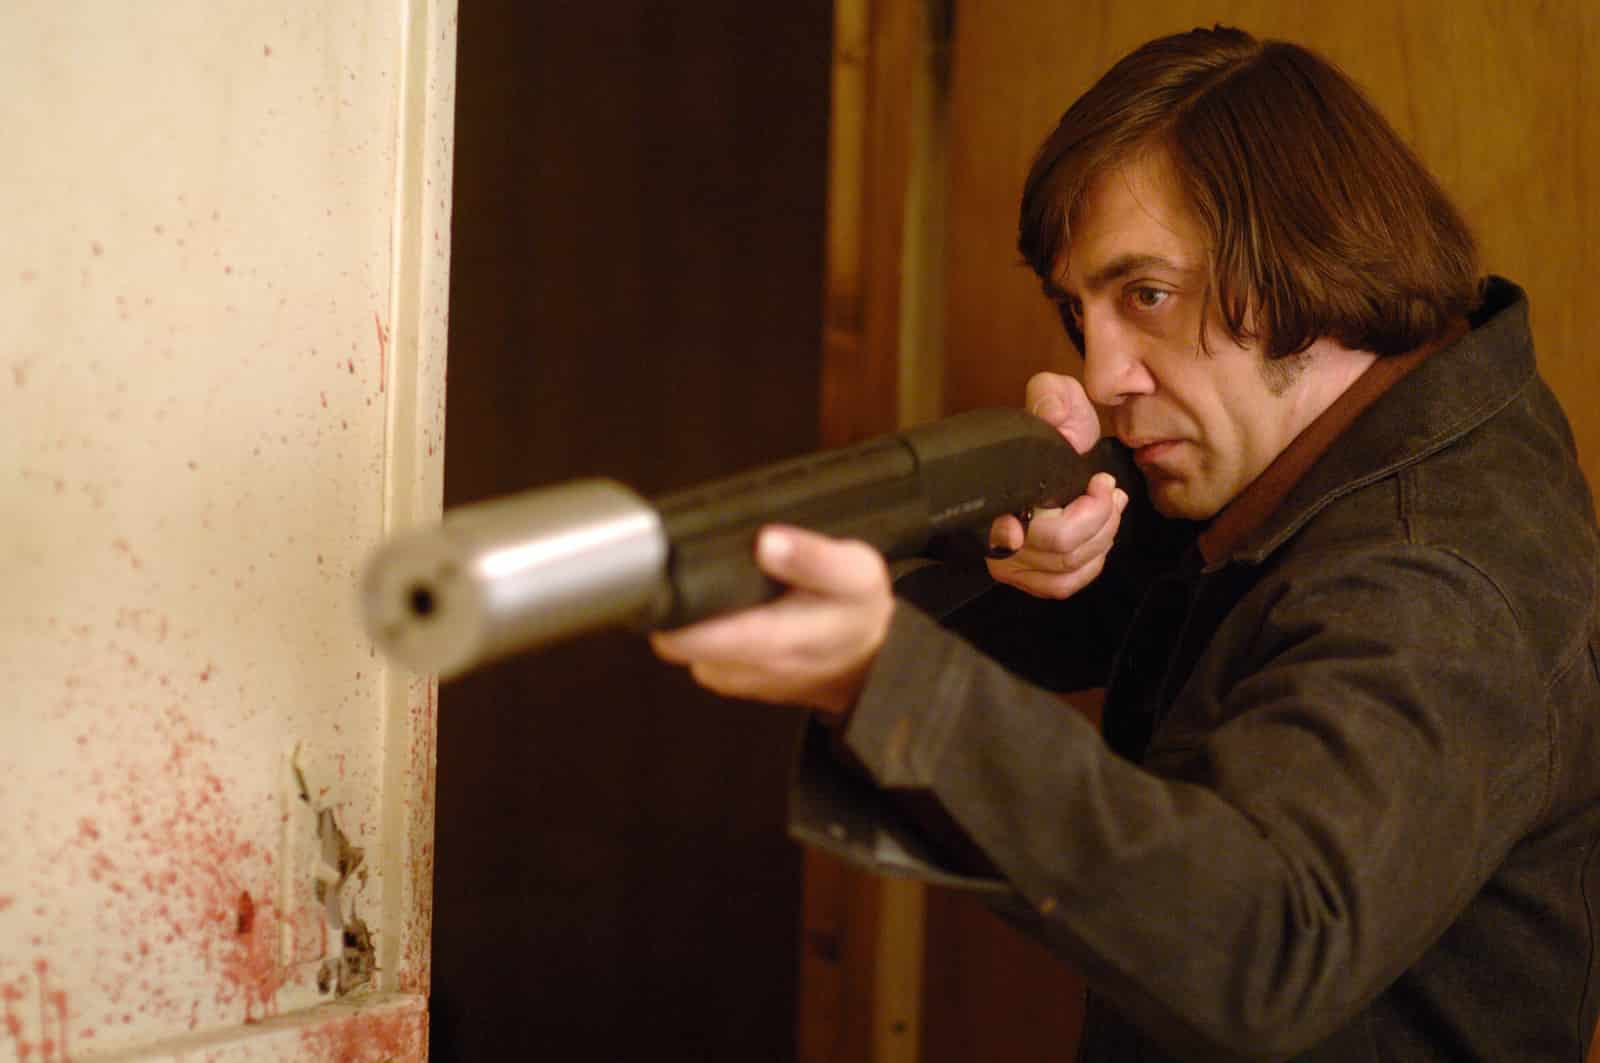 Low Angle Shot - Low Angle Example - No Country 2